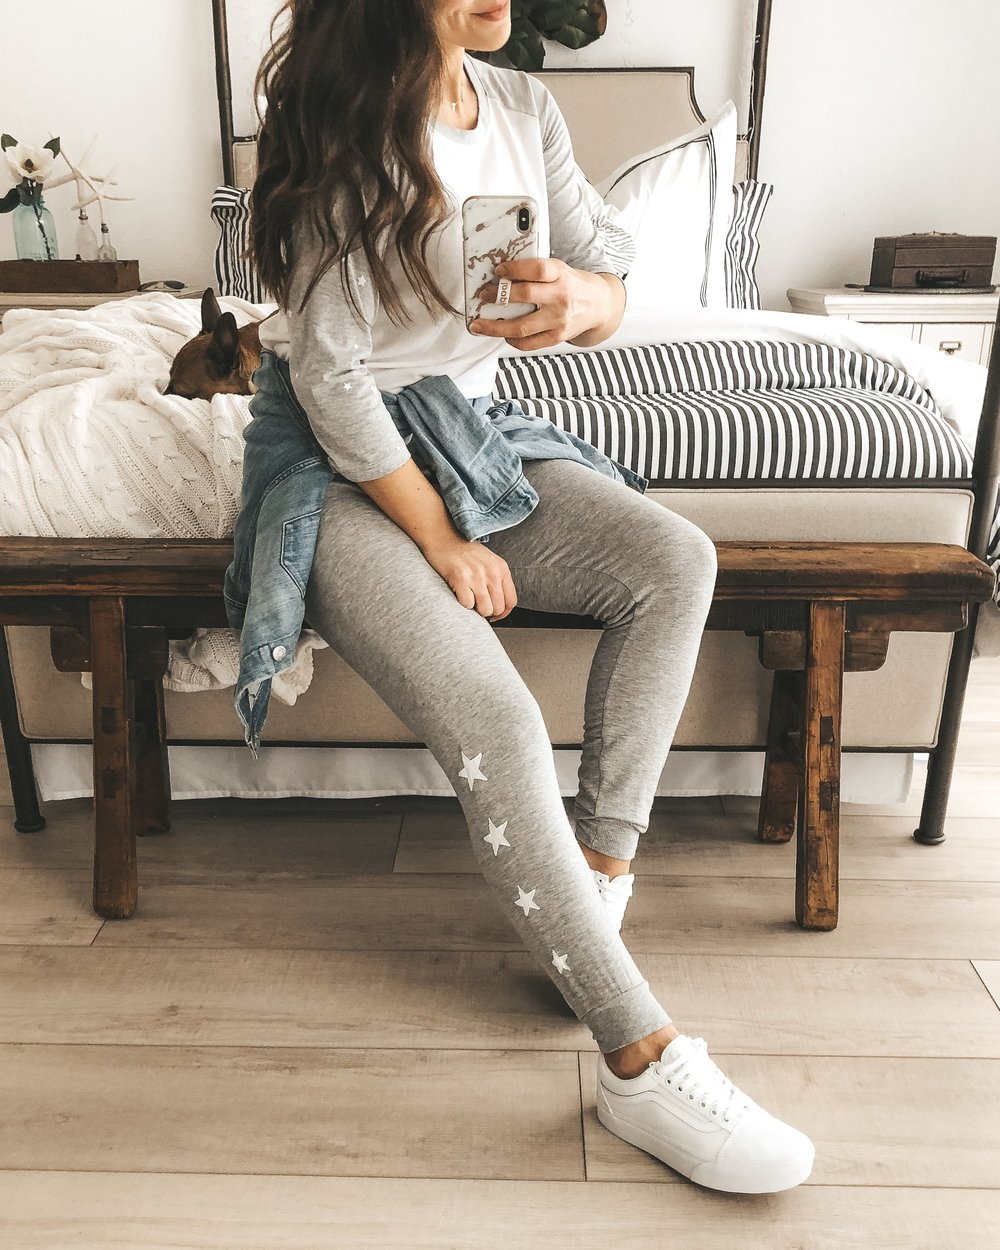 Z Supply star joggers.  Z Supply star baseball tee.  Vans old skool platform in white_jcrew denim jacket.  Cute weekend outfit.  Casual mom outfit.